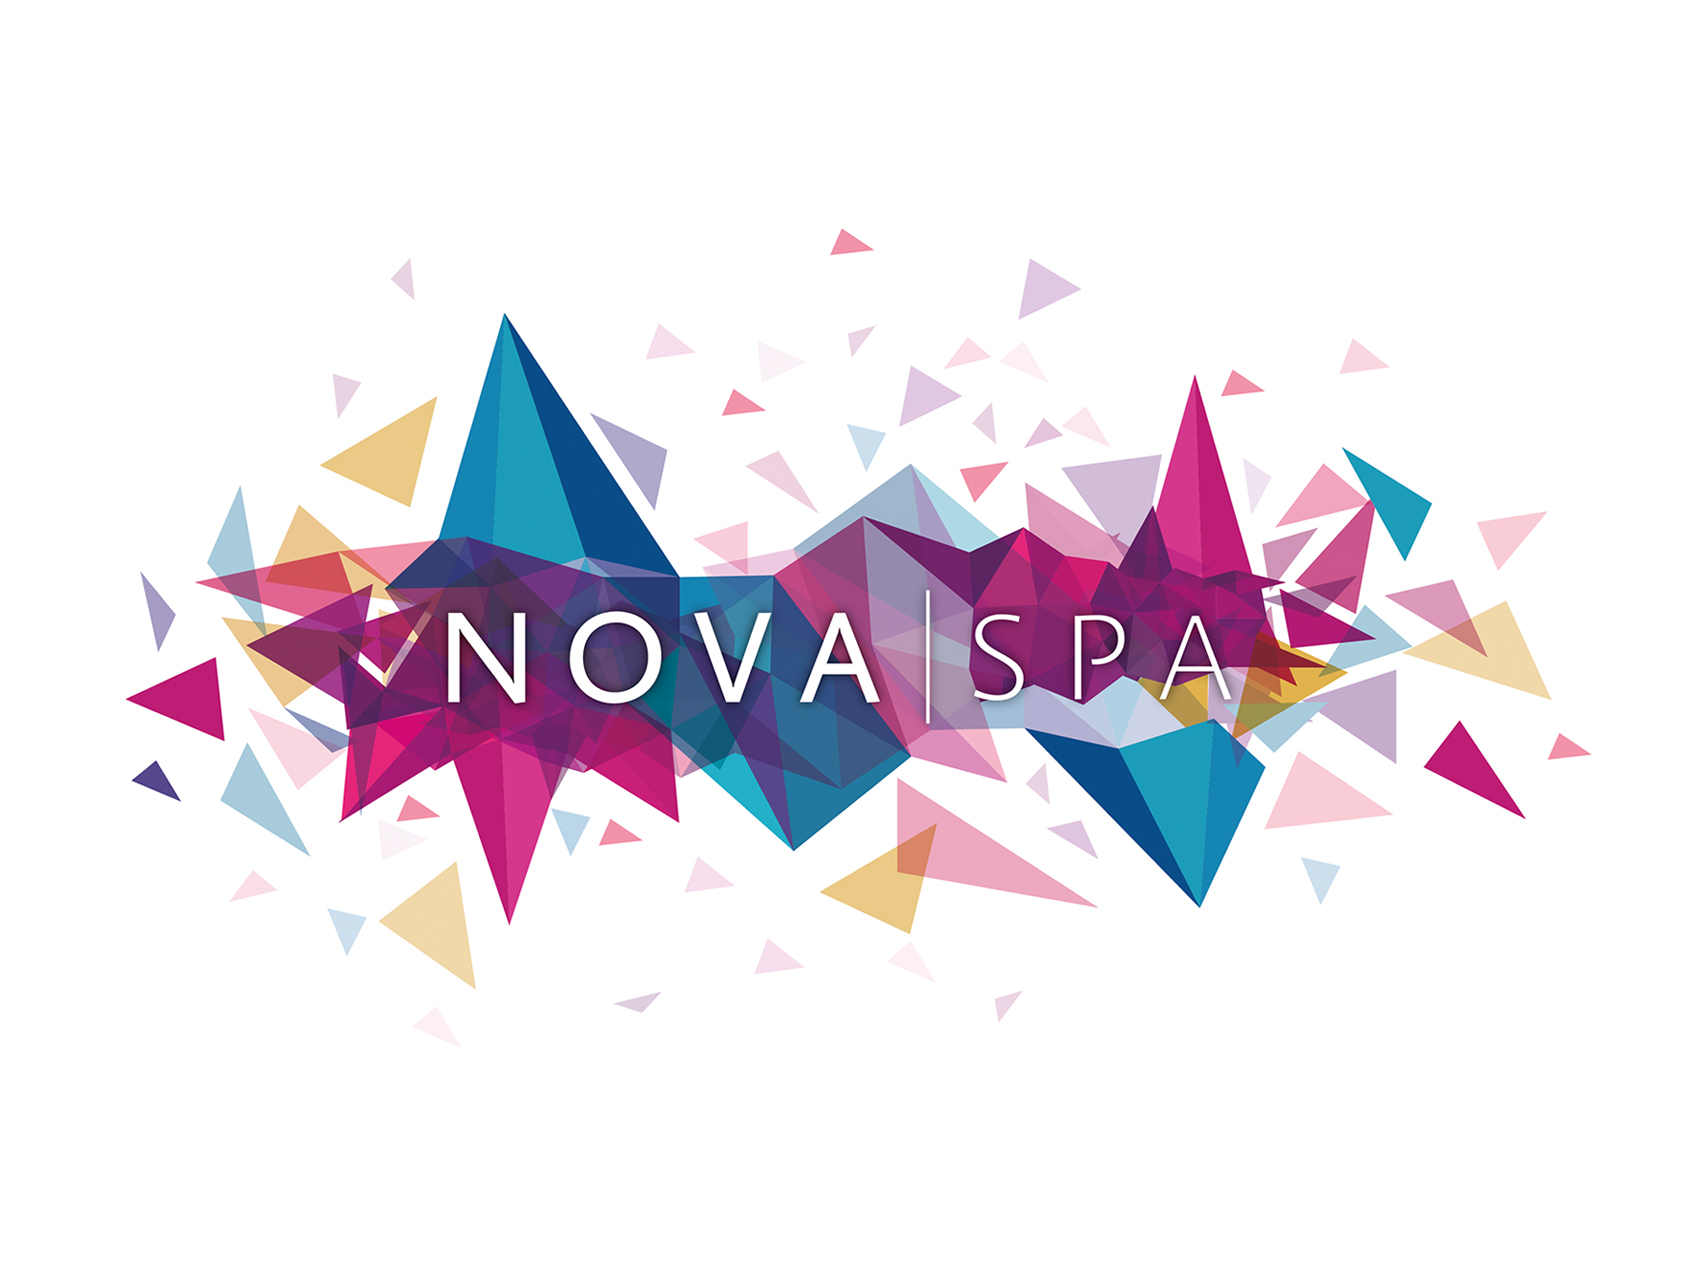 Nova spa logo design by collective